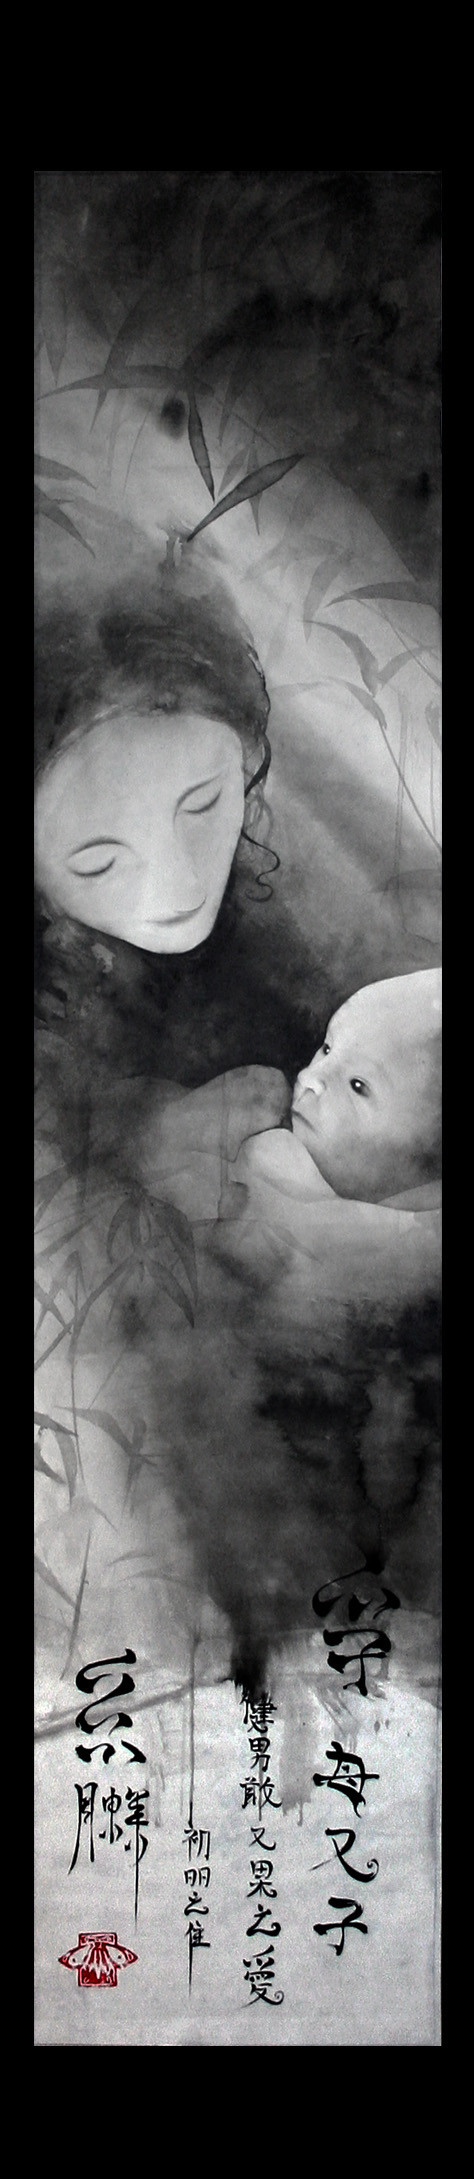 Trust - Mother & Child - atmospheric fantasy paintings in watercolor & ink by sebastian rutkowski - moonlight-art